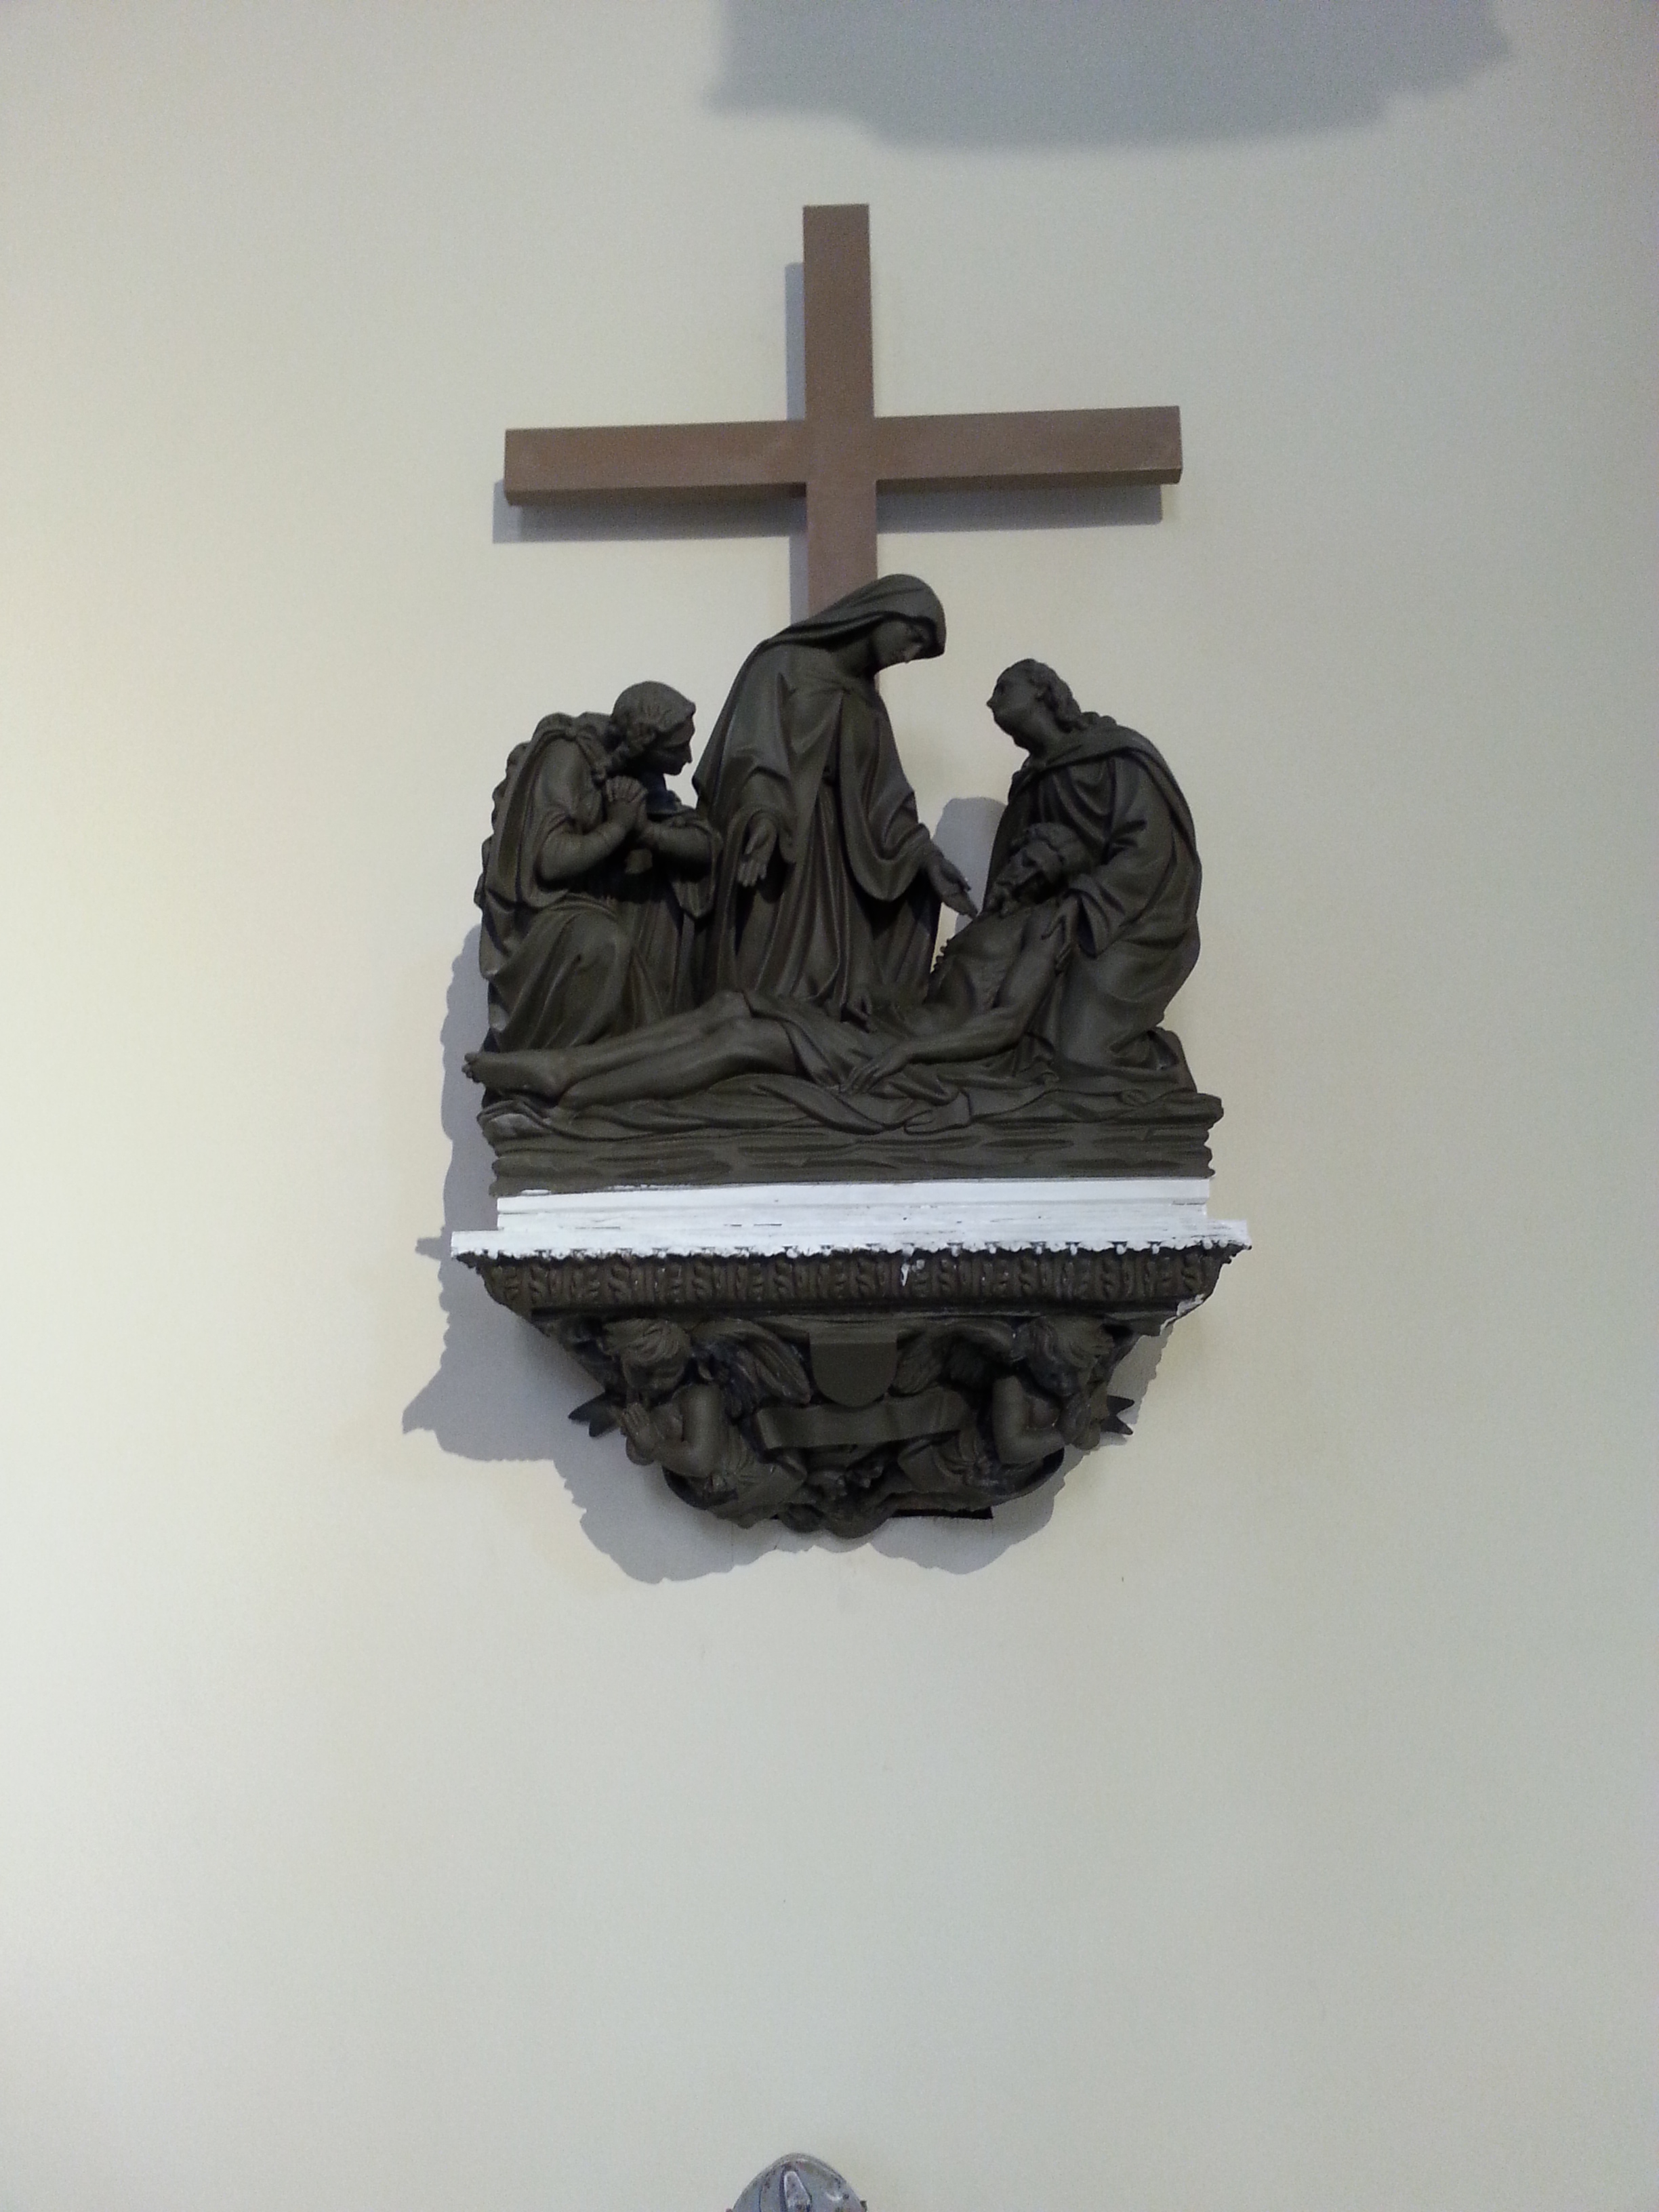 FPDR station of the cross mounted on to a wall